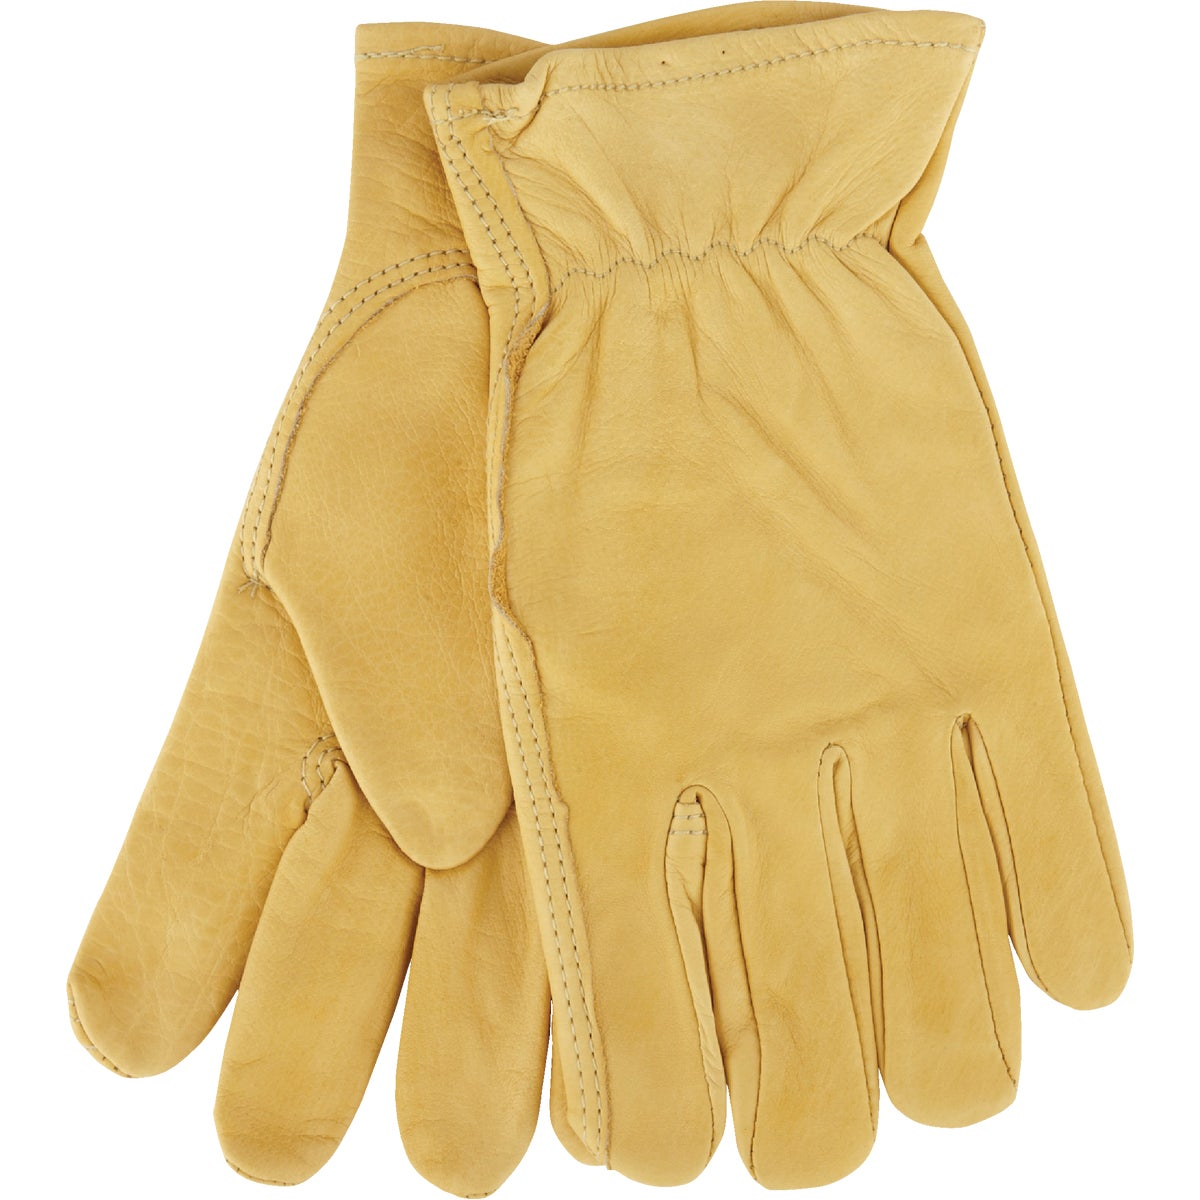 XXL COWHIDE GRAIN GLOVE - 712101 by Do it Best